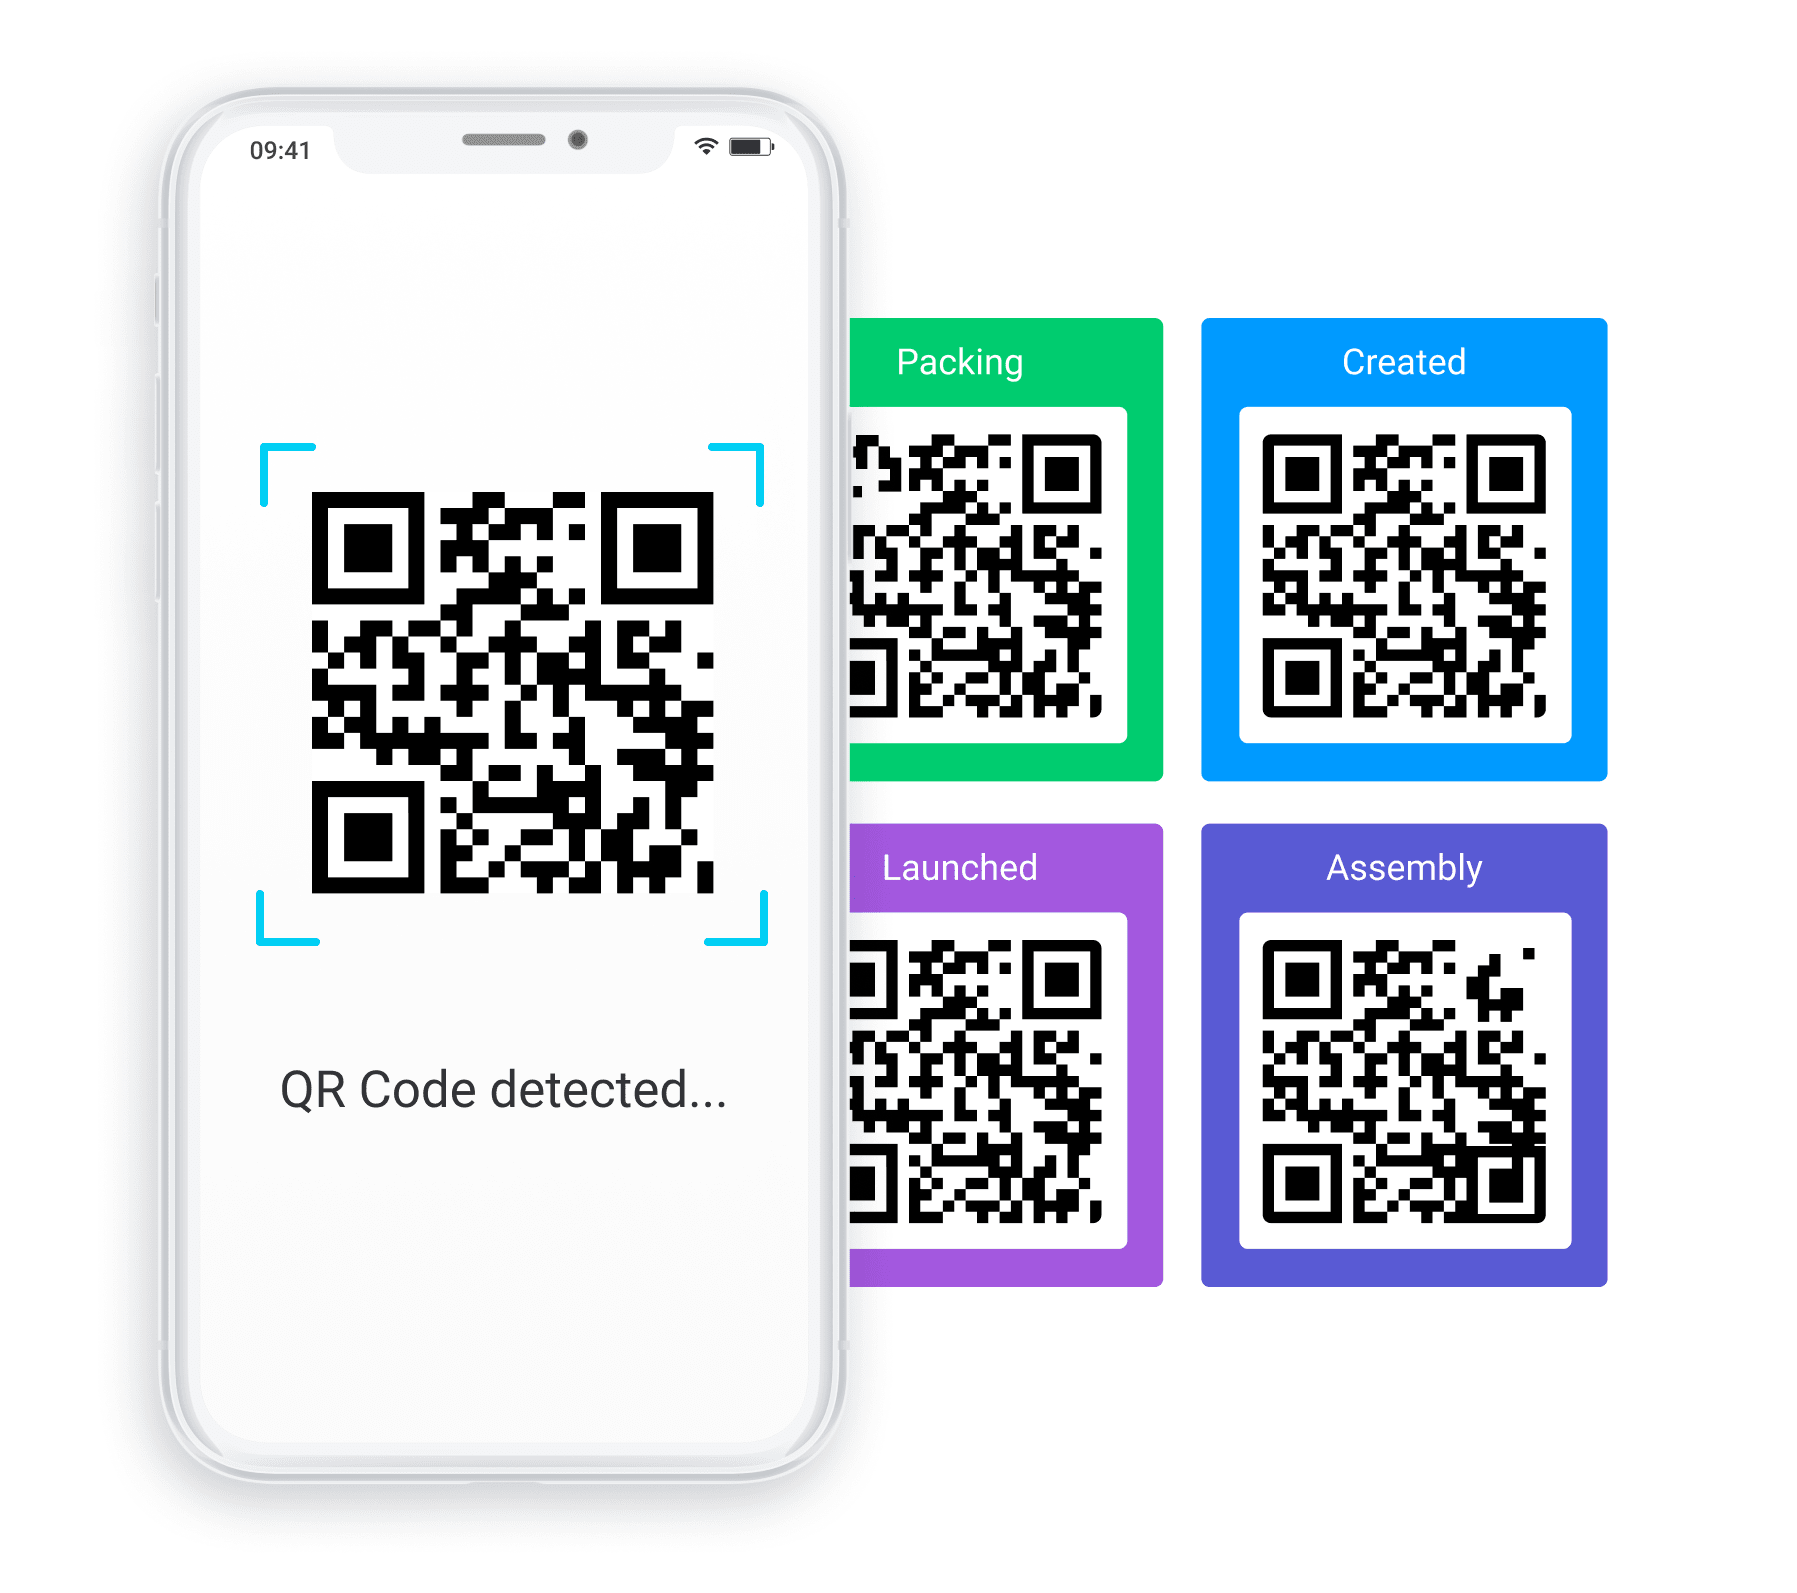 QR code into order processing tracking board